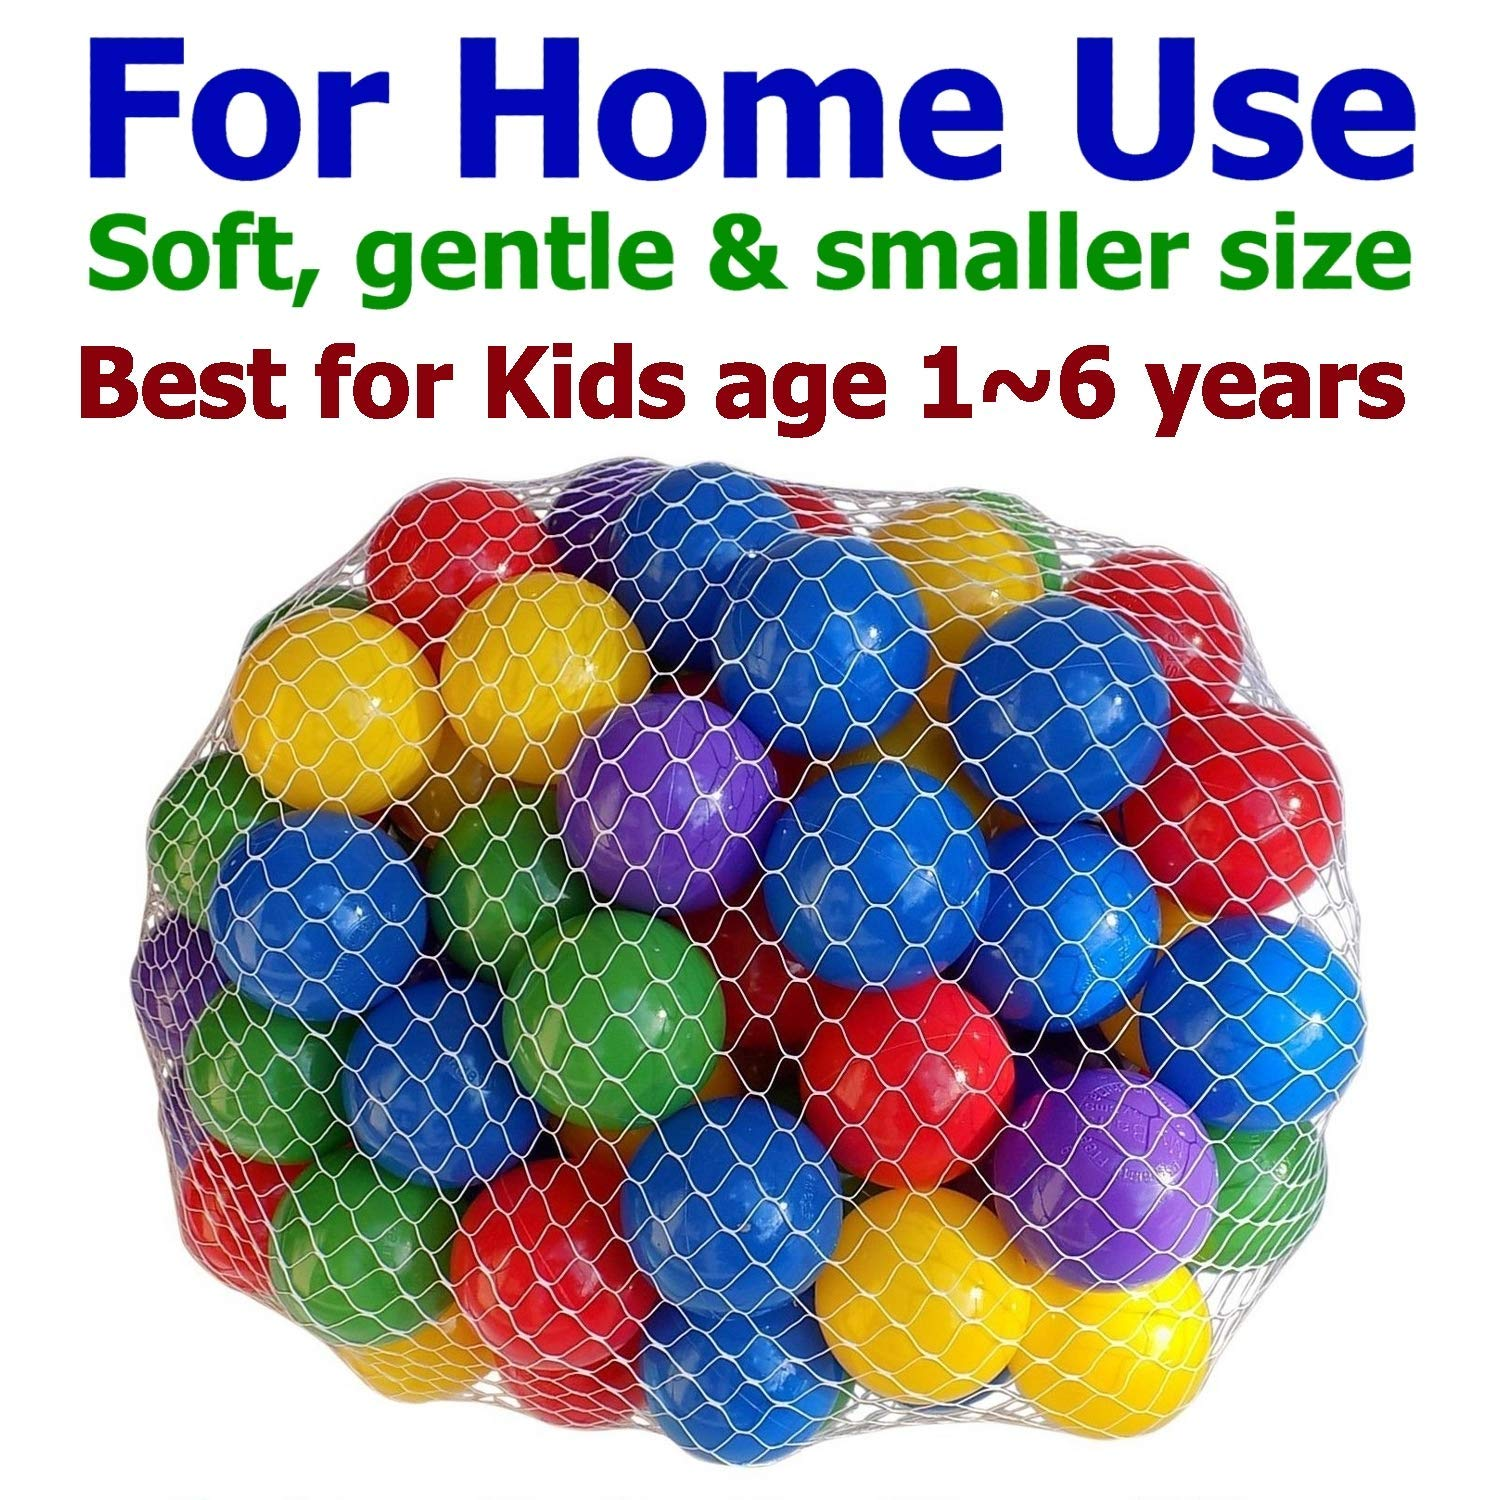 Pack of 200 Large Size 2.5'' Crush-Proof Ball Pit Balls - 5 Colors, Phthalate Free; BPA Free, Non-Toxic, Non-Recycled Plastic (Pack of 200) by My Balls